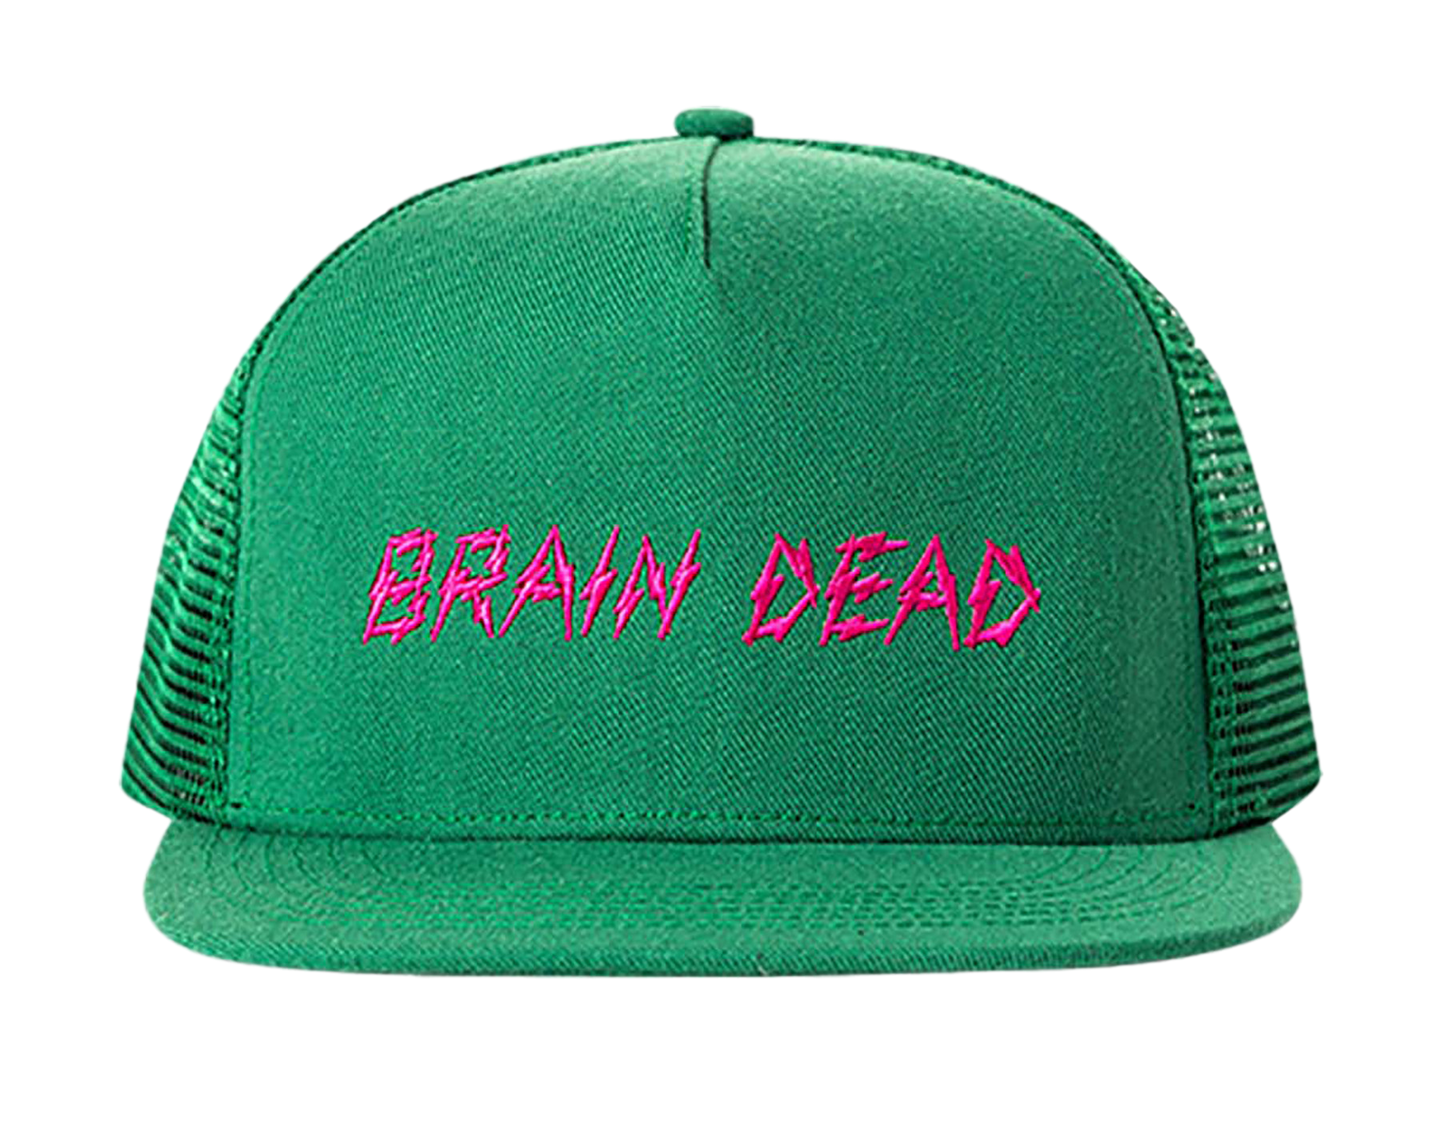 BD BOLT MESH HAT - GREEN